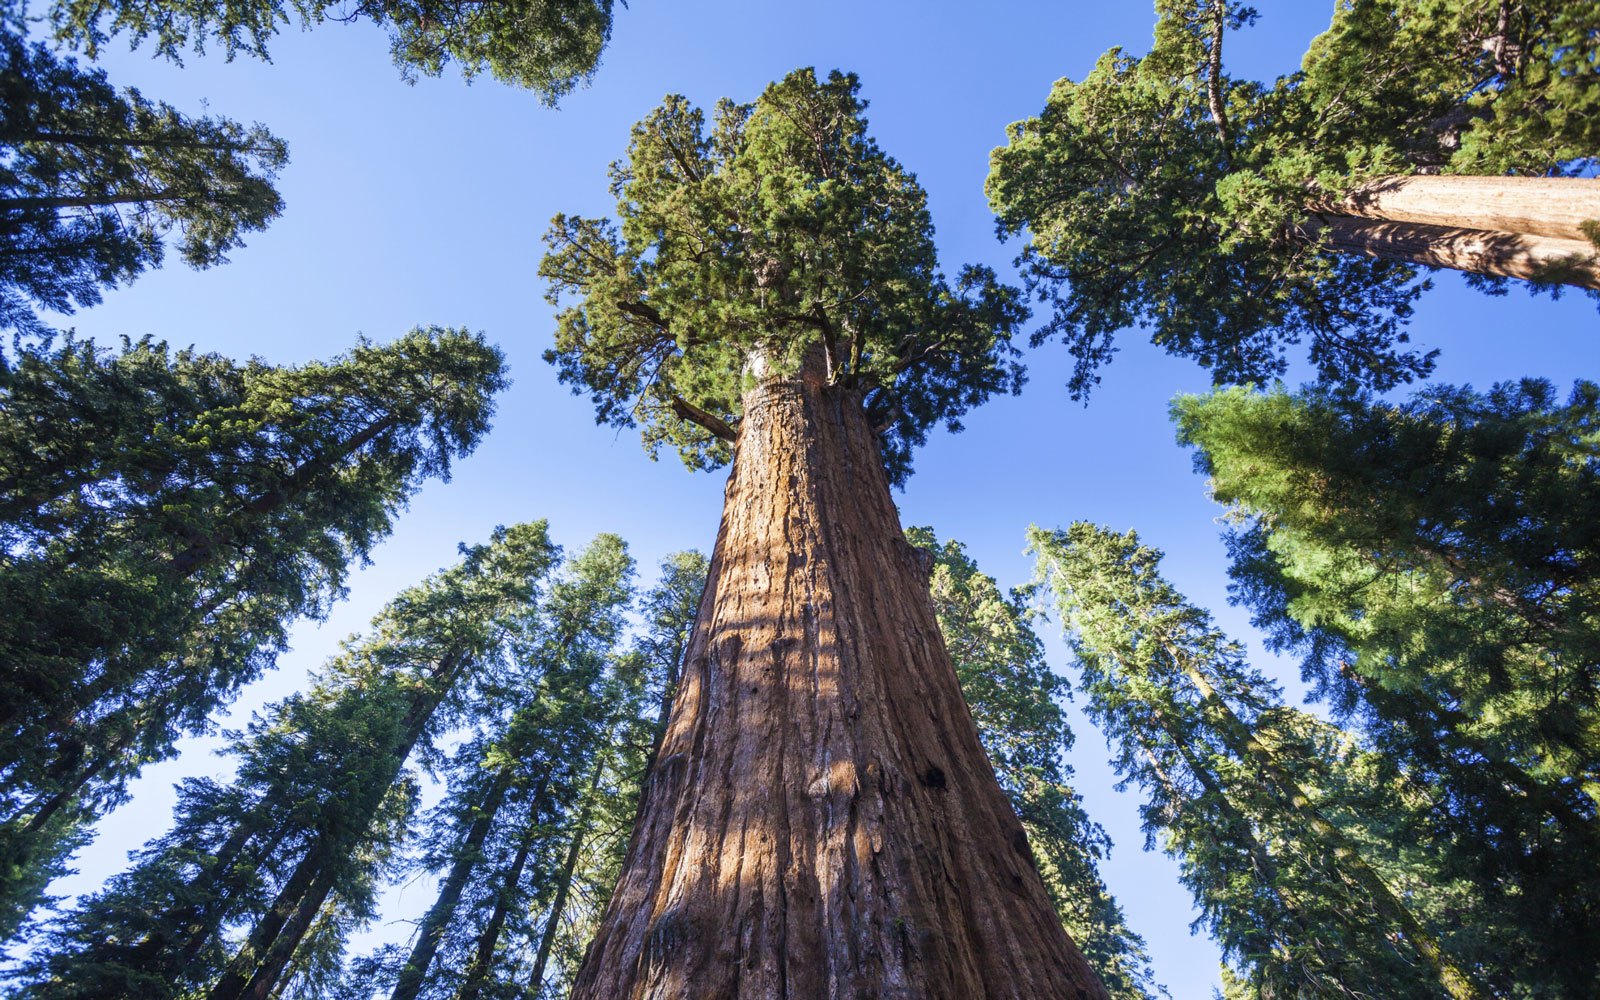 The Giant Forest Sequoia and Kings Canyon National Park, CA